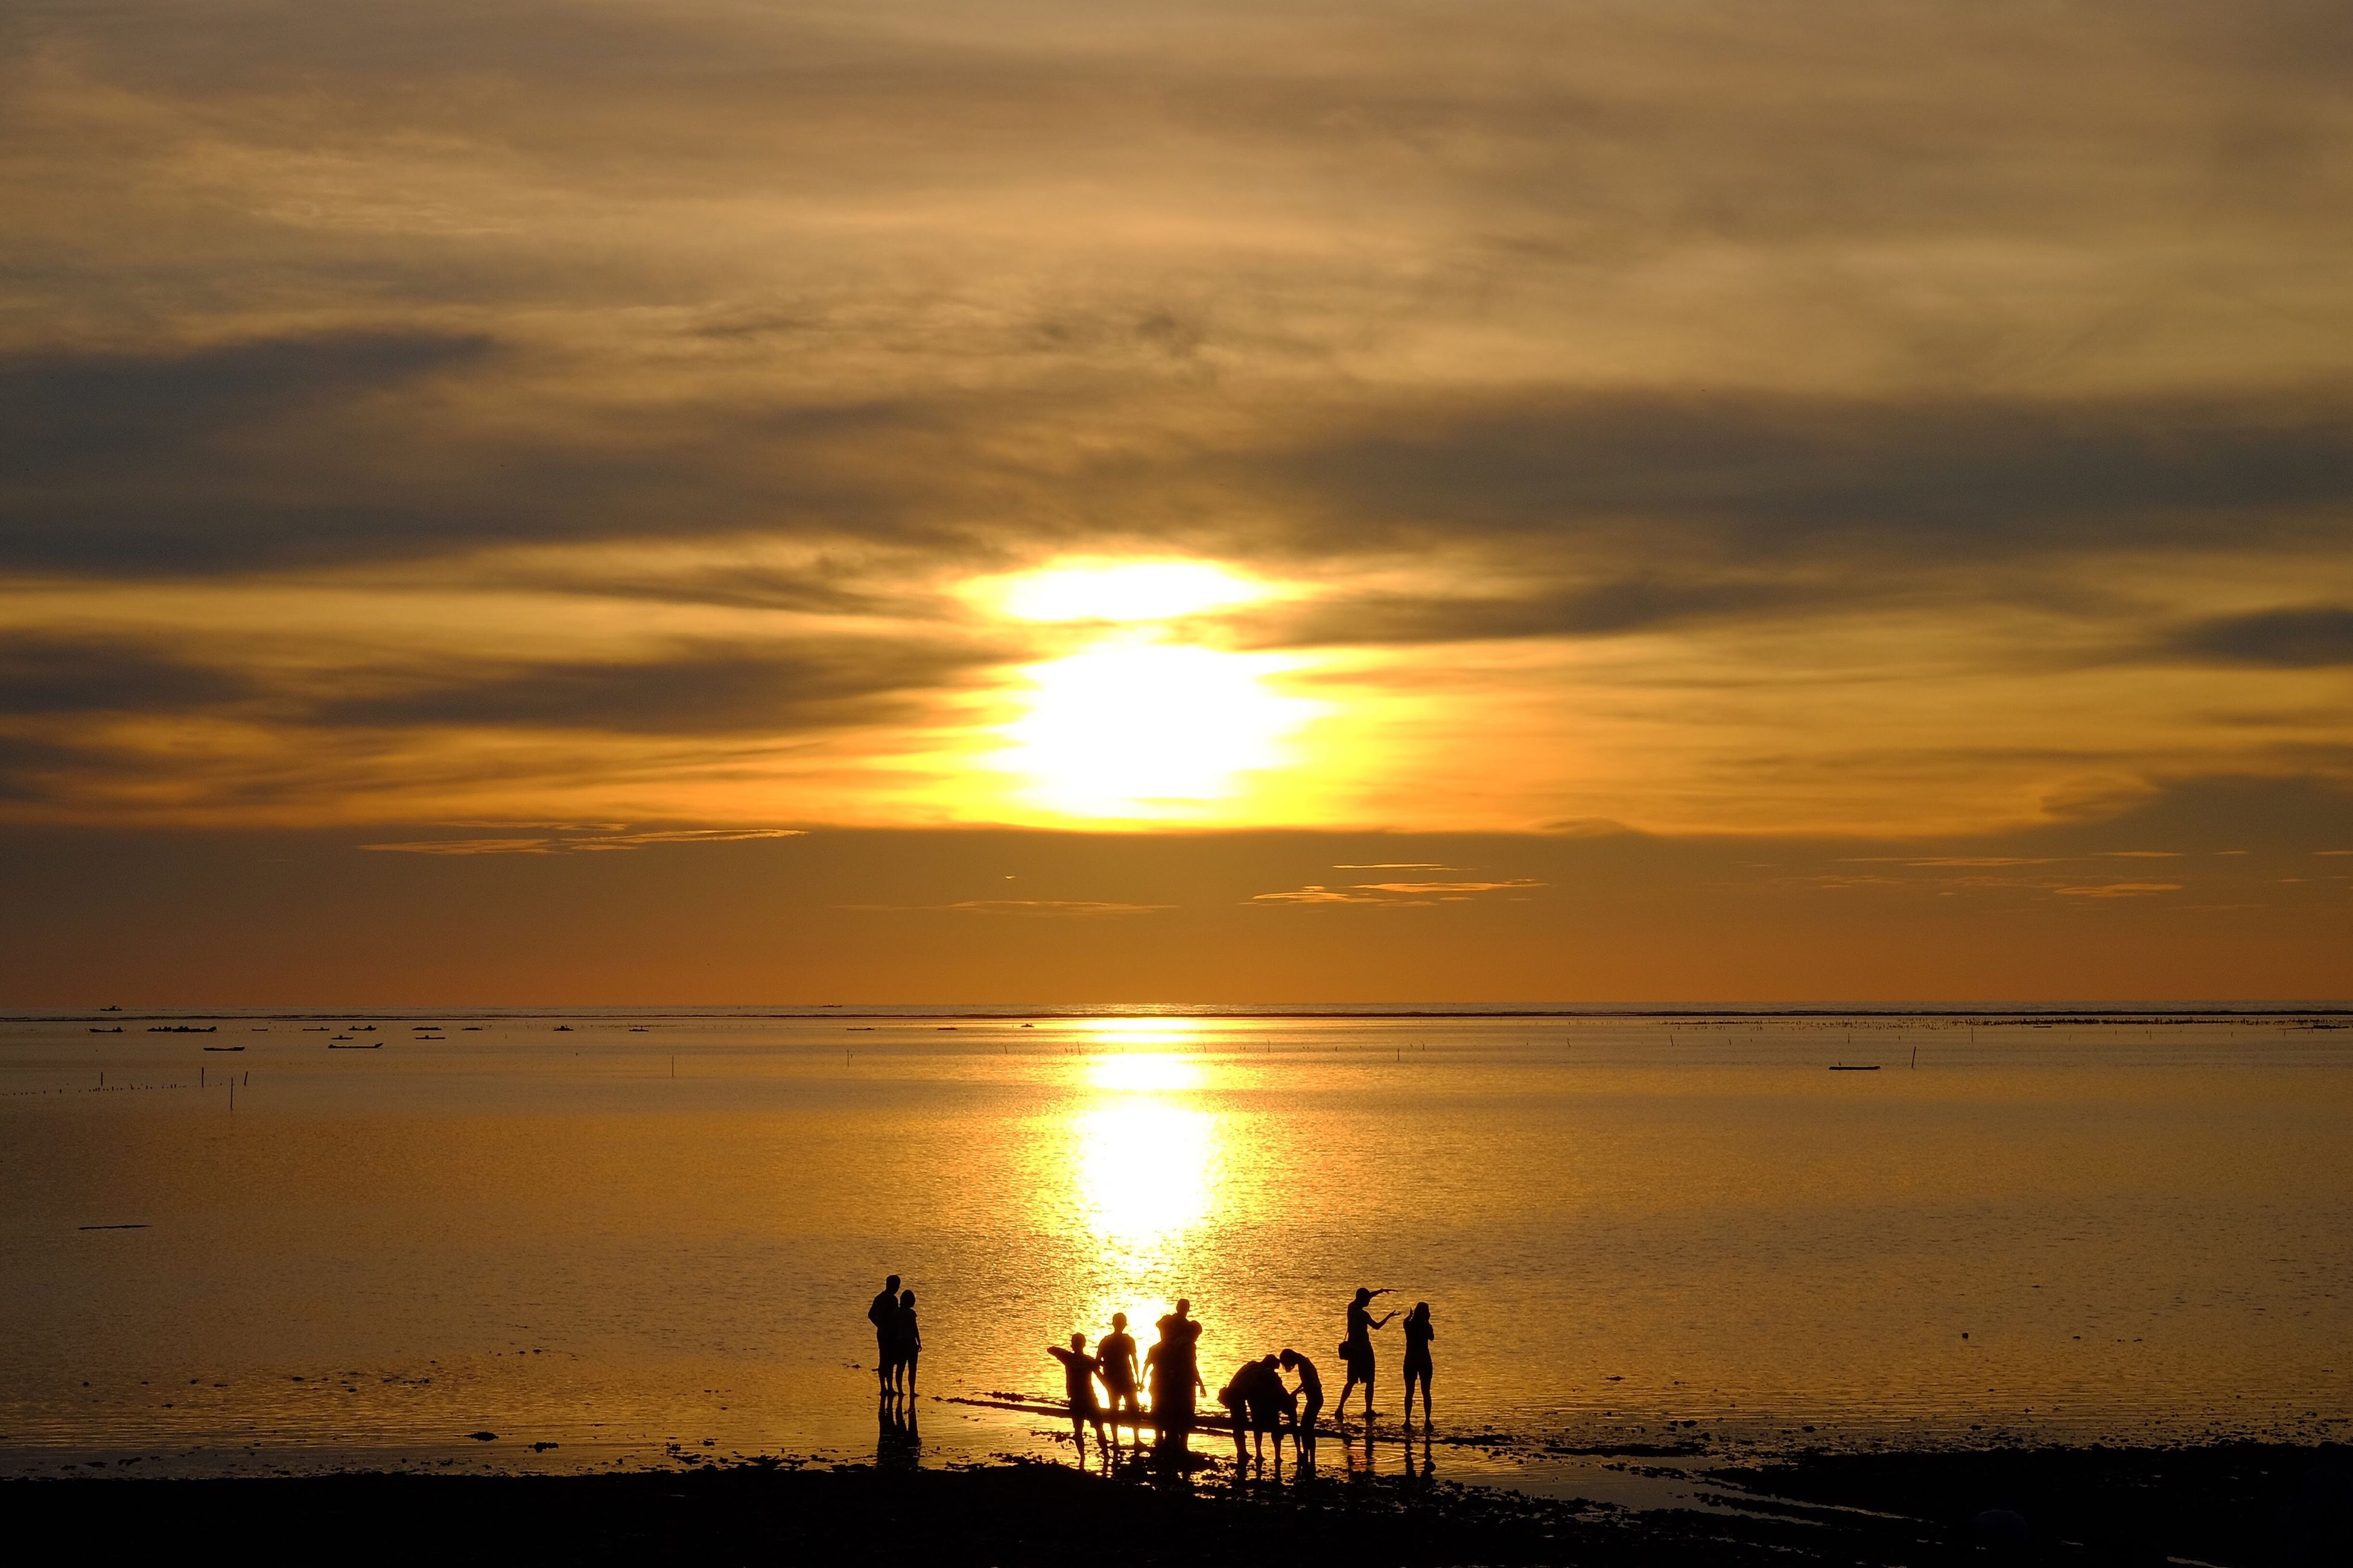 sunset, water, sun, vacations, silhouette, leisure activity, tranquil scene, tourism, scenics, tranquility, lifestyles, medium group of people, tourist, beauty in nature, togetherness, weekend activities, idyllic, enjoyment, childhood, sea, travel, reflection, cloud - sky, orange color, atmosphere, nature, majestic, vibrant color, hobbies, travel destinations